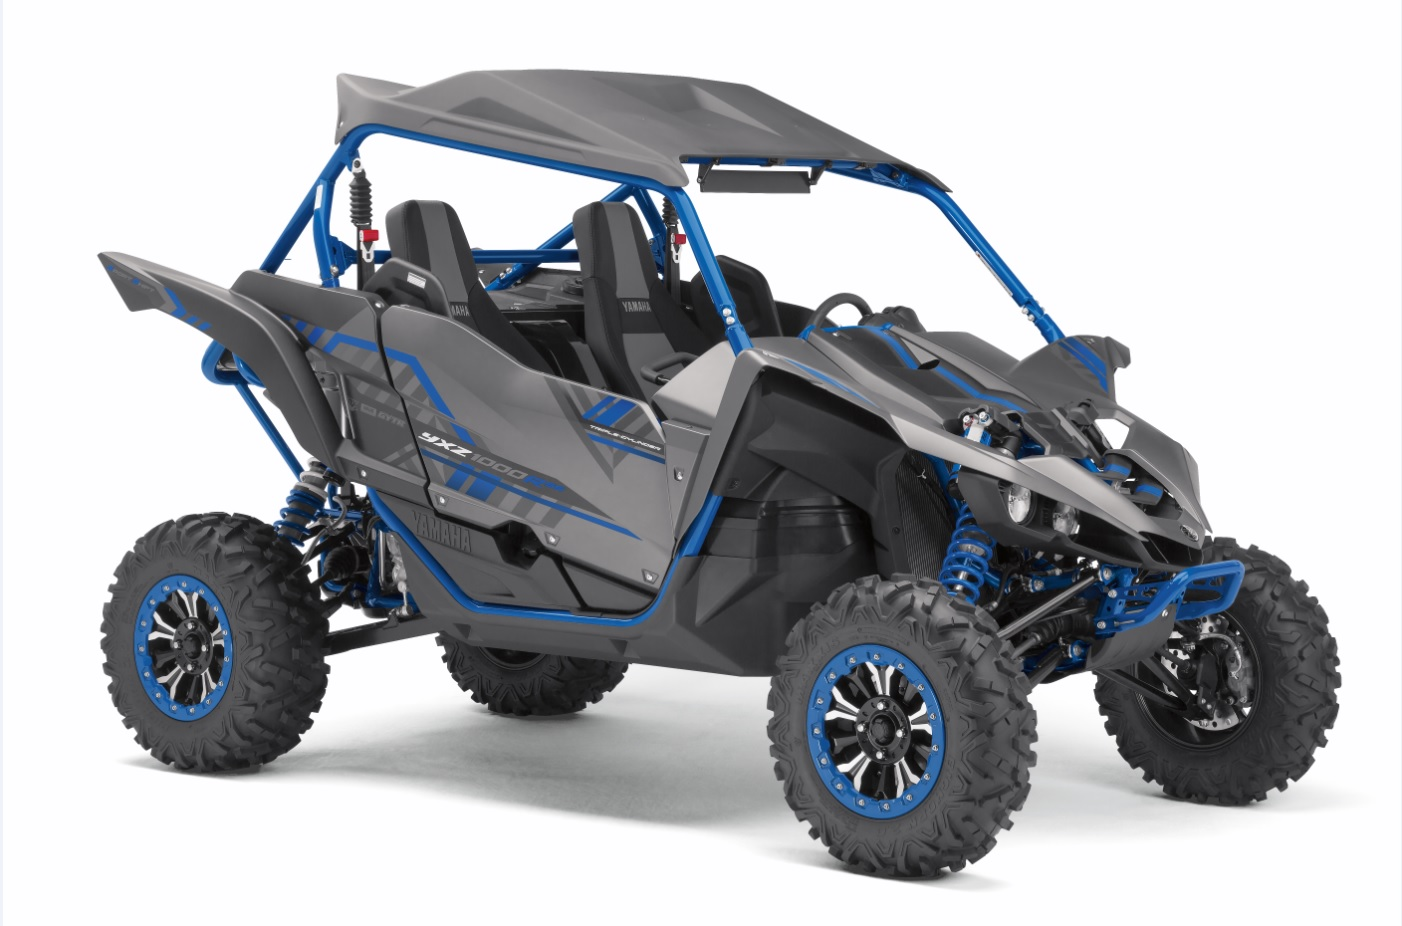 Yamaha expands yxz1000r line with new special edition for 2017 yamaha yxz1000r turbo